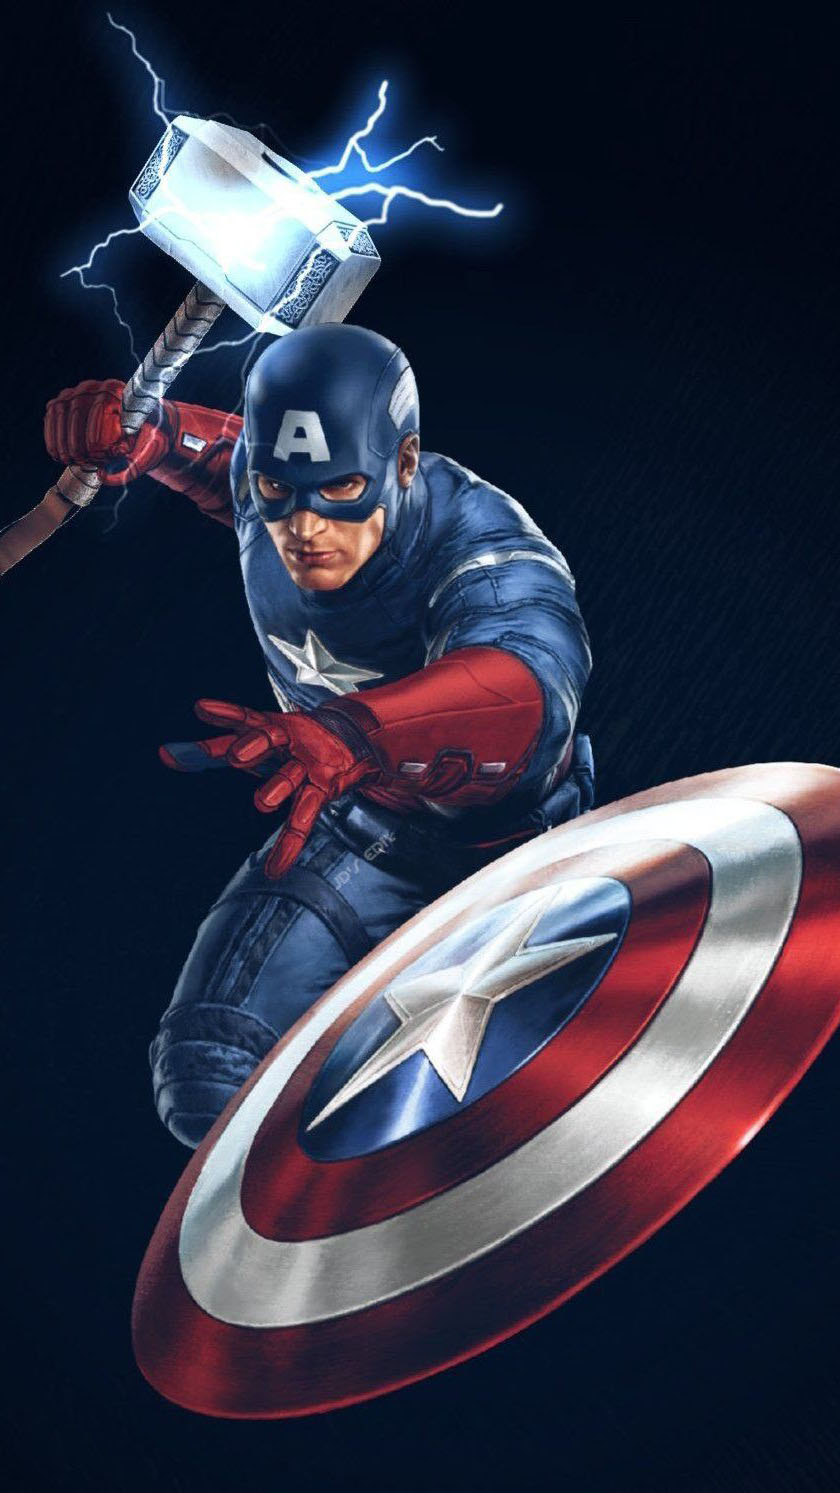 Animal Face Wallpaper Captain America With Thor Hammer Worthy Iphone Wallpaper